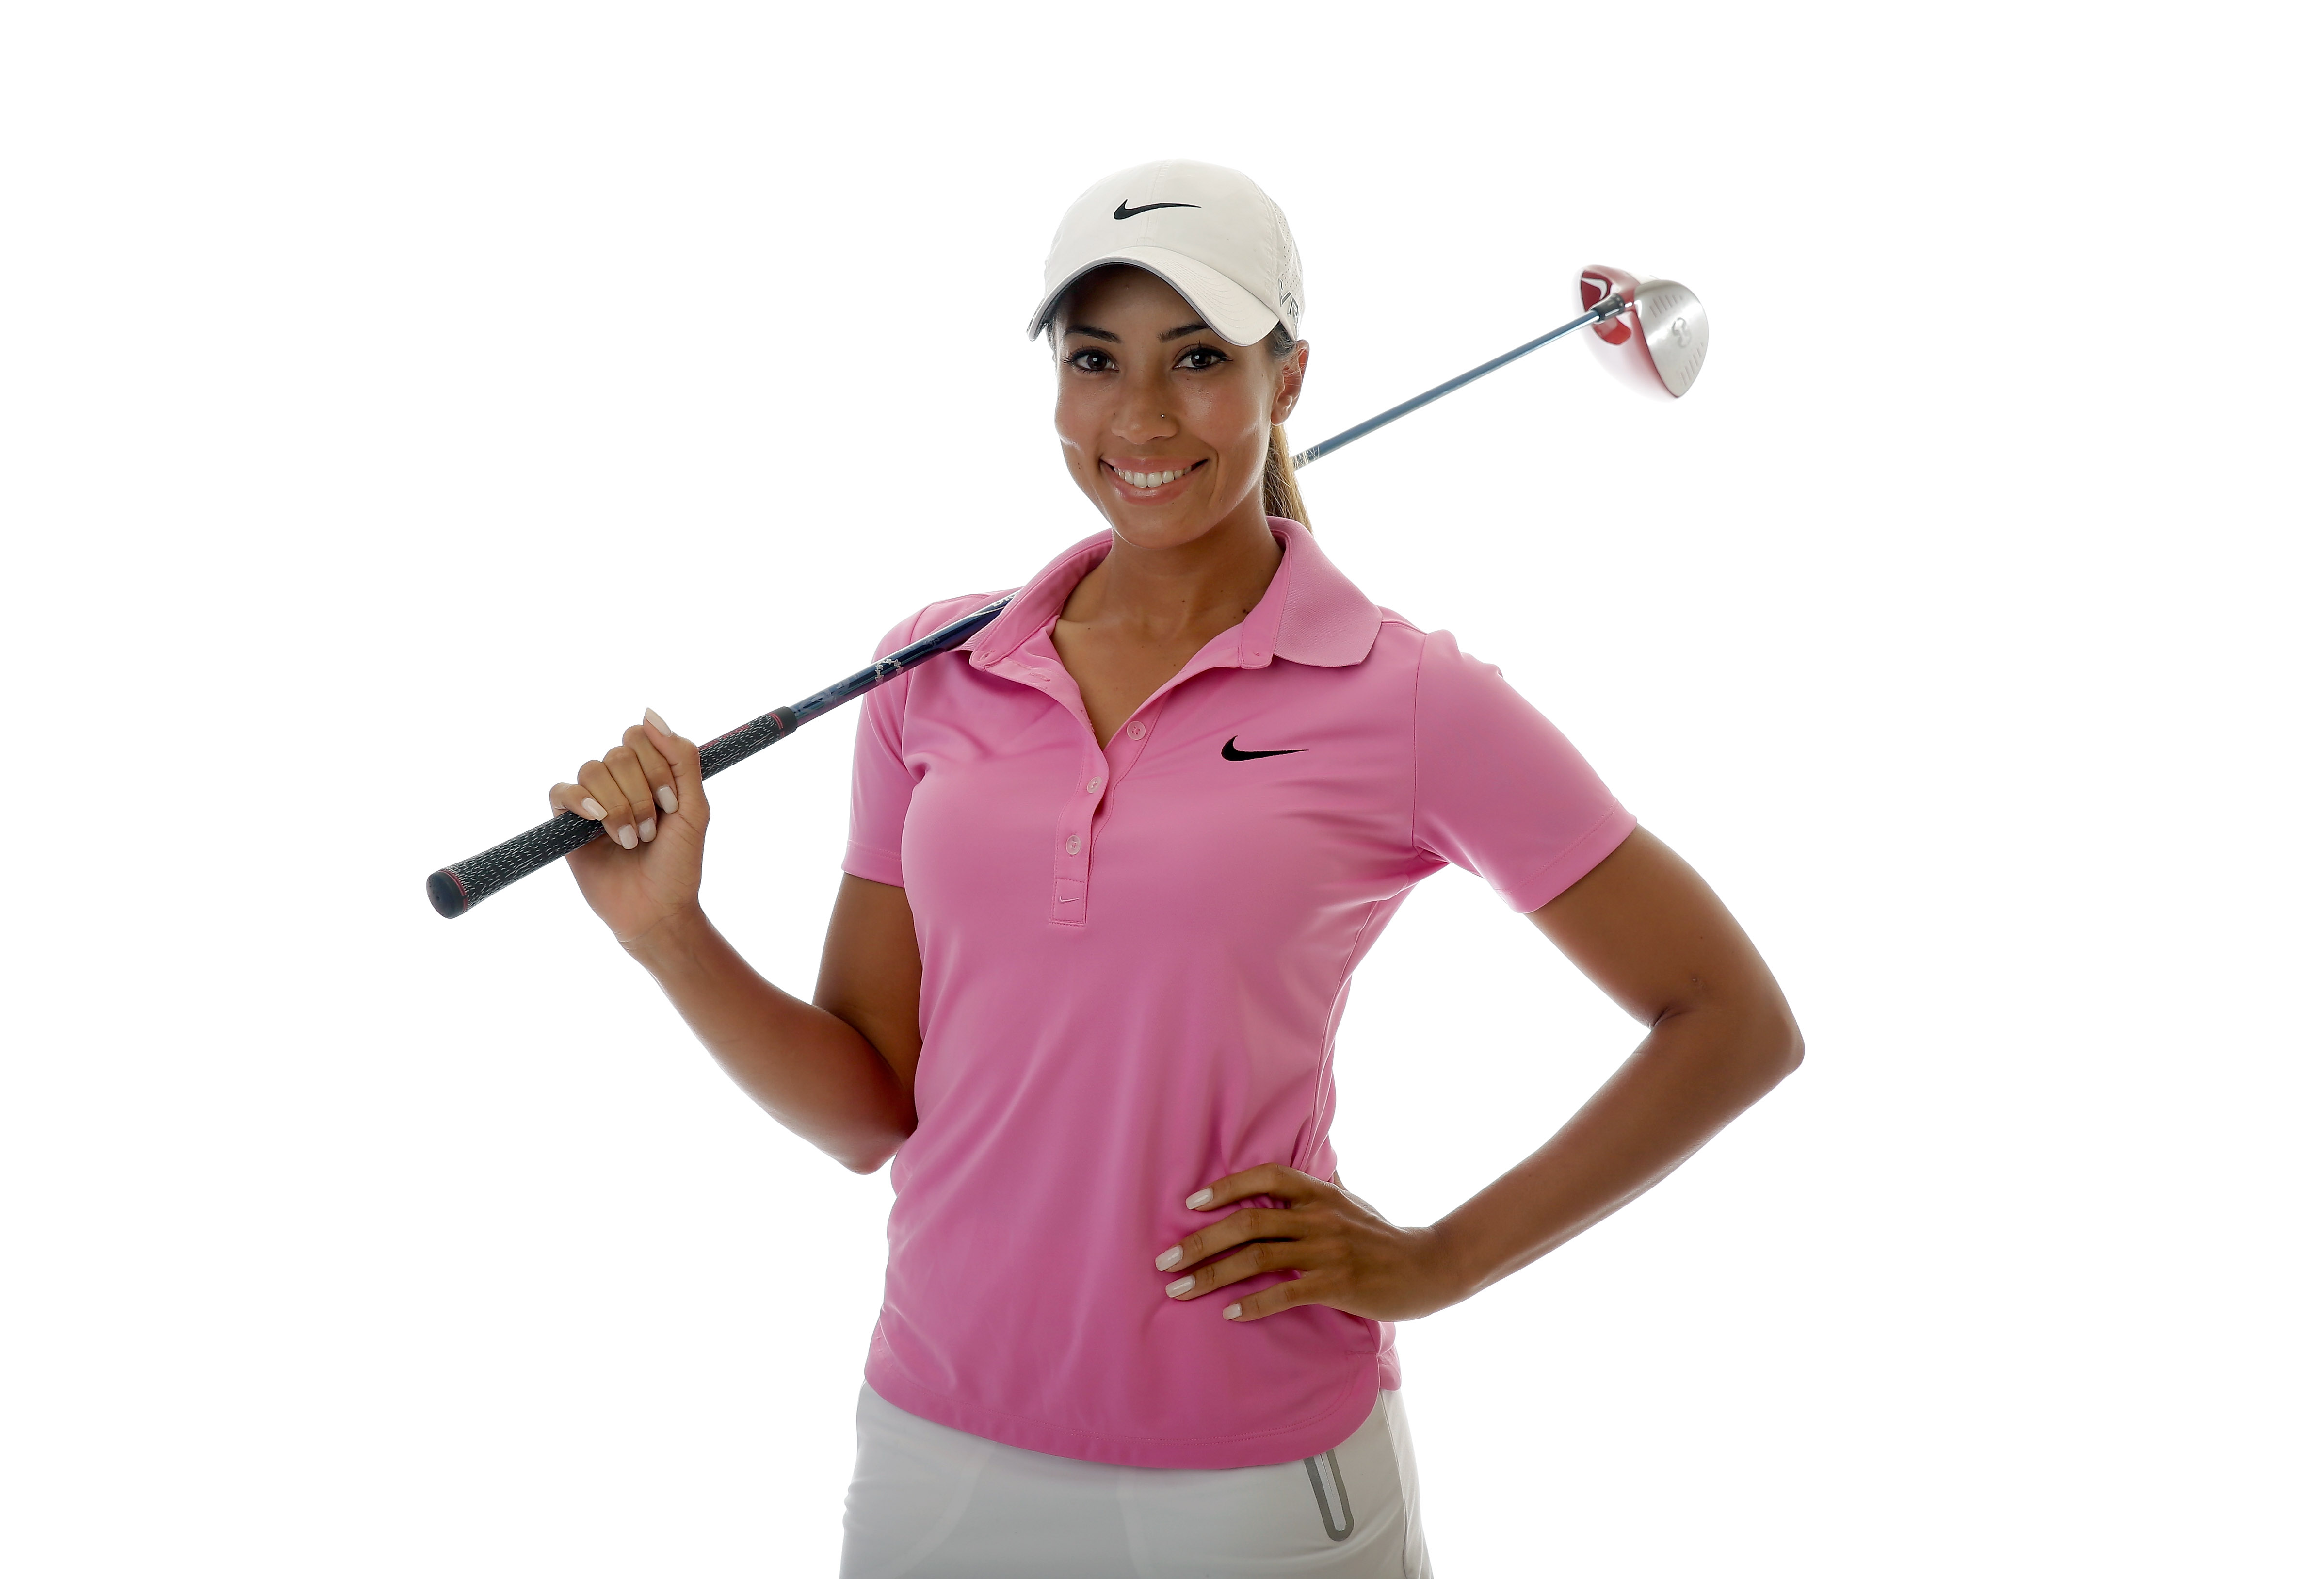 Cheyenne Woods, 24, is the daughter of Tiger's half-brother Earl Jr.